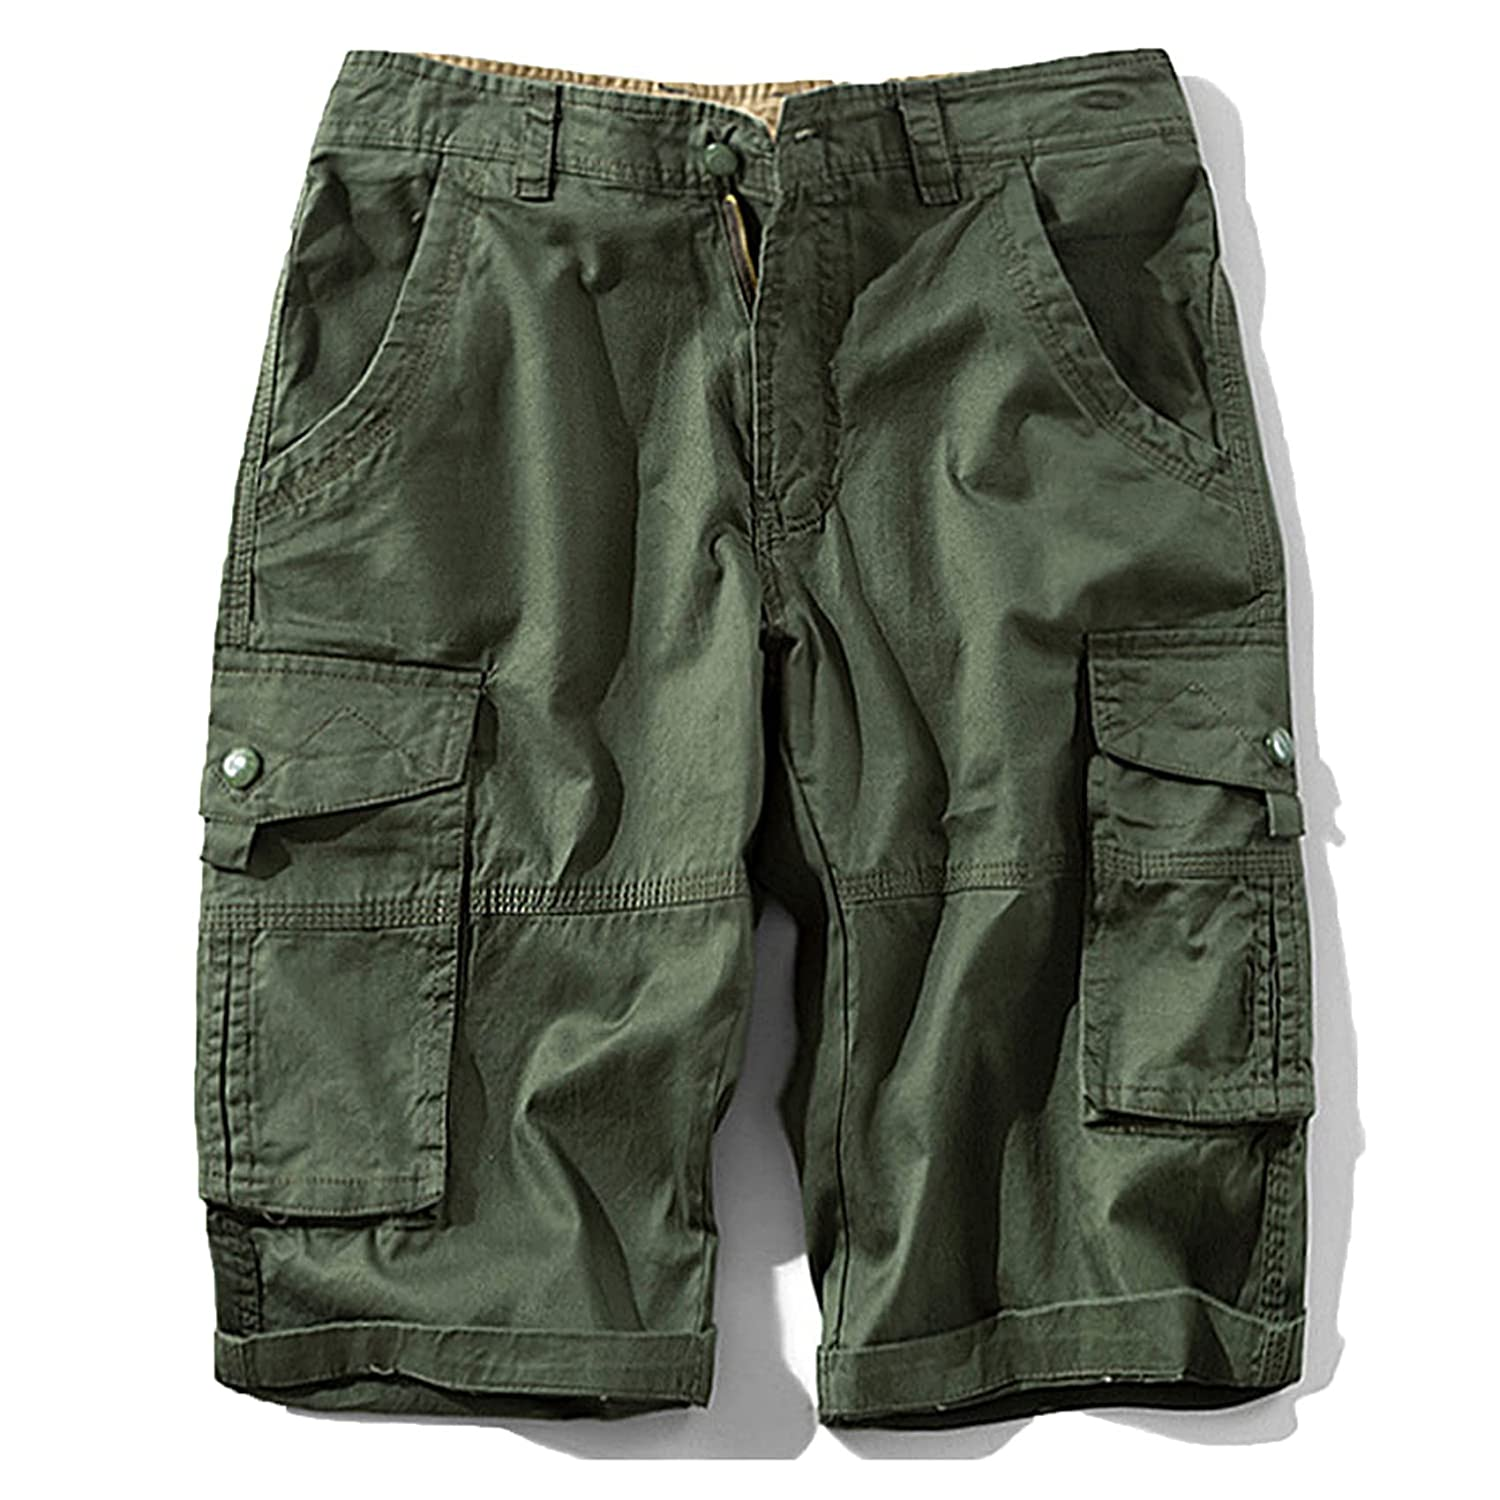 Men's Camo Cargo Shorts Mens Camouflage Multi-Pocket Cargo Shorts Relaxed Fit Casual Shorts Outdoor Twill Cargo Shorts (36,Green)